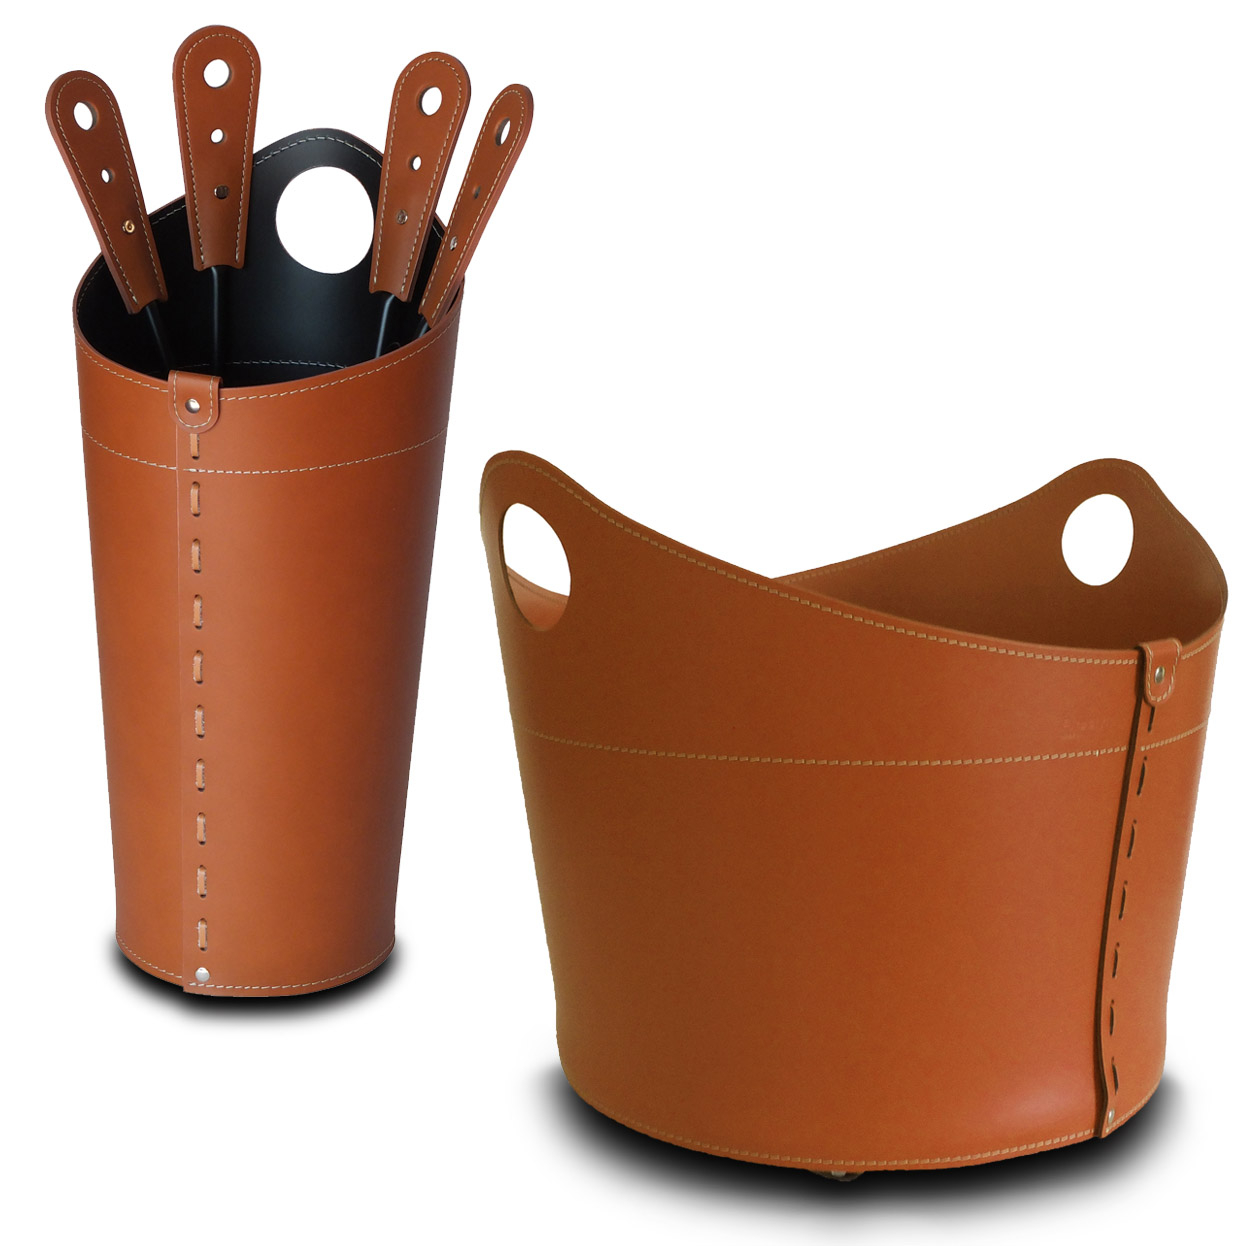 NICAD: set da camino in cuoio colore Marrone composto da portalegna, borsa porta-ferri e attrezzi da camino, idea regalo, cesta per legna, Made in Italy, design Firestyle®.